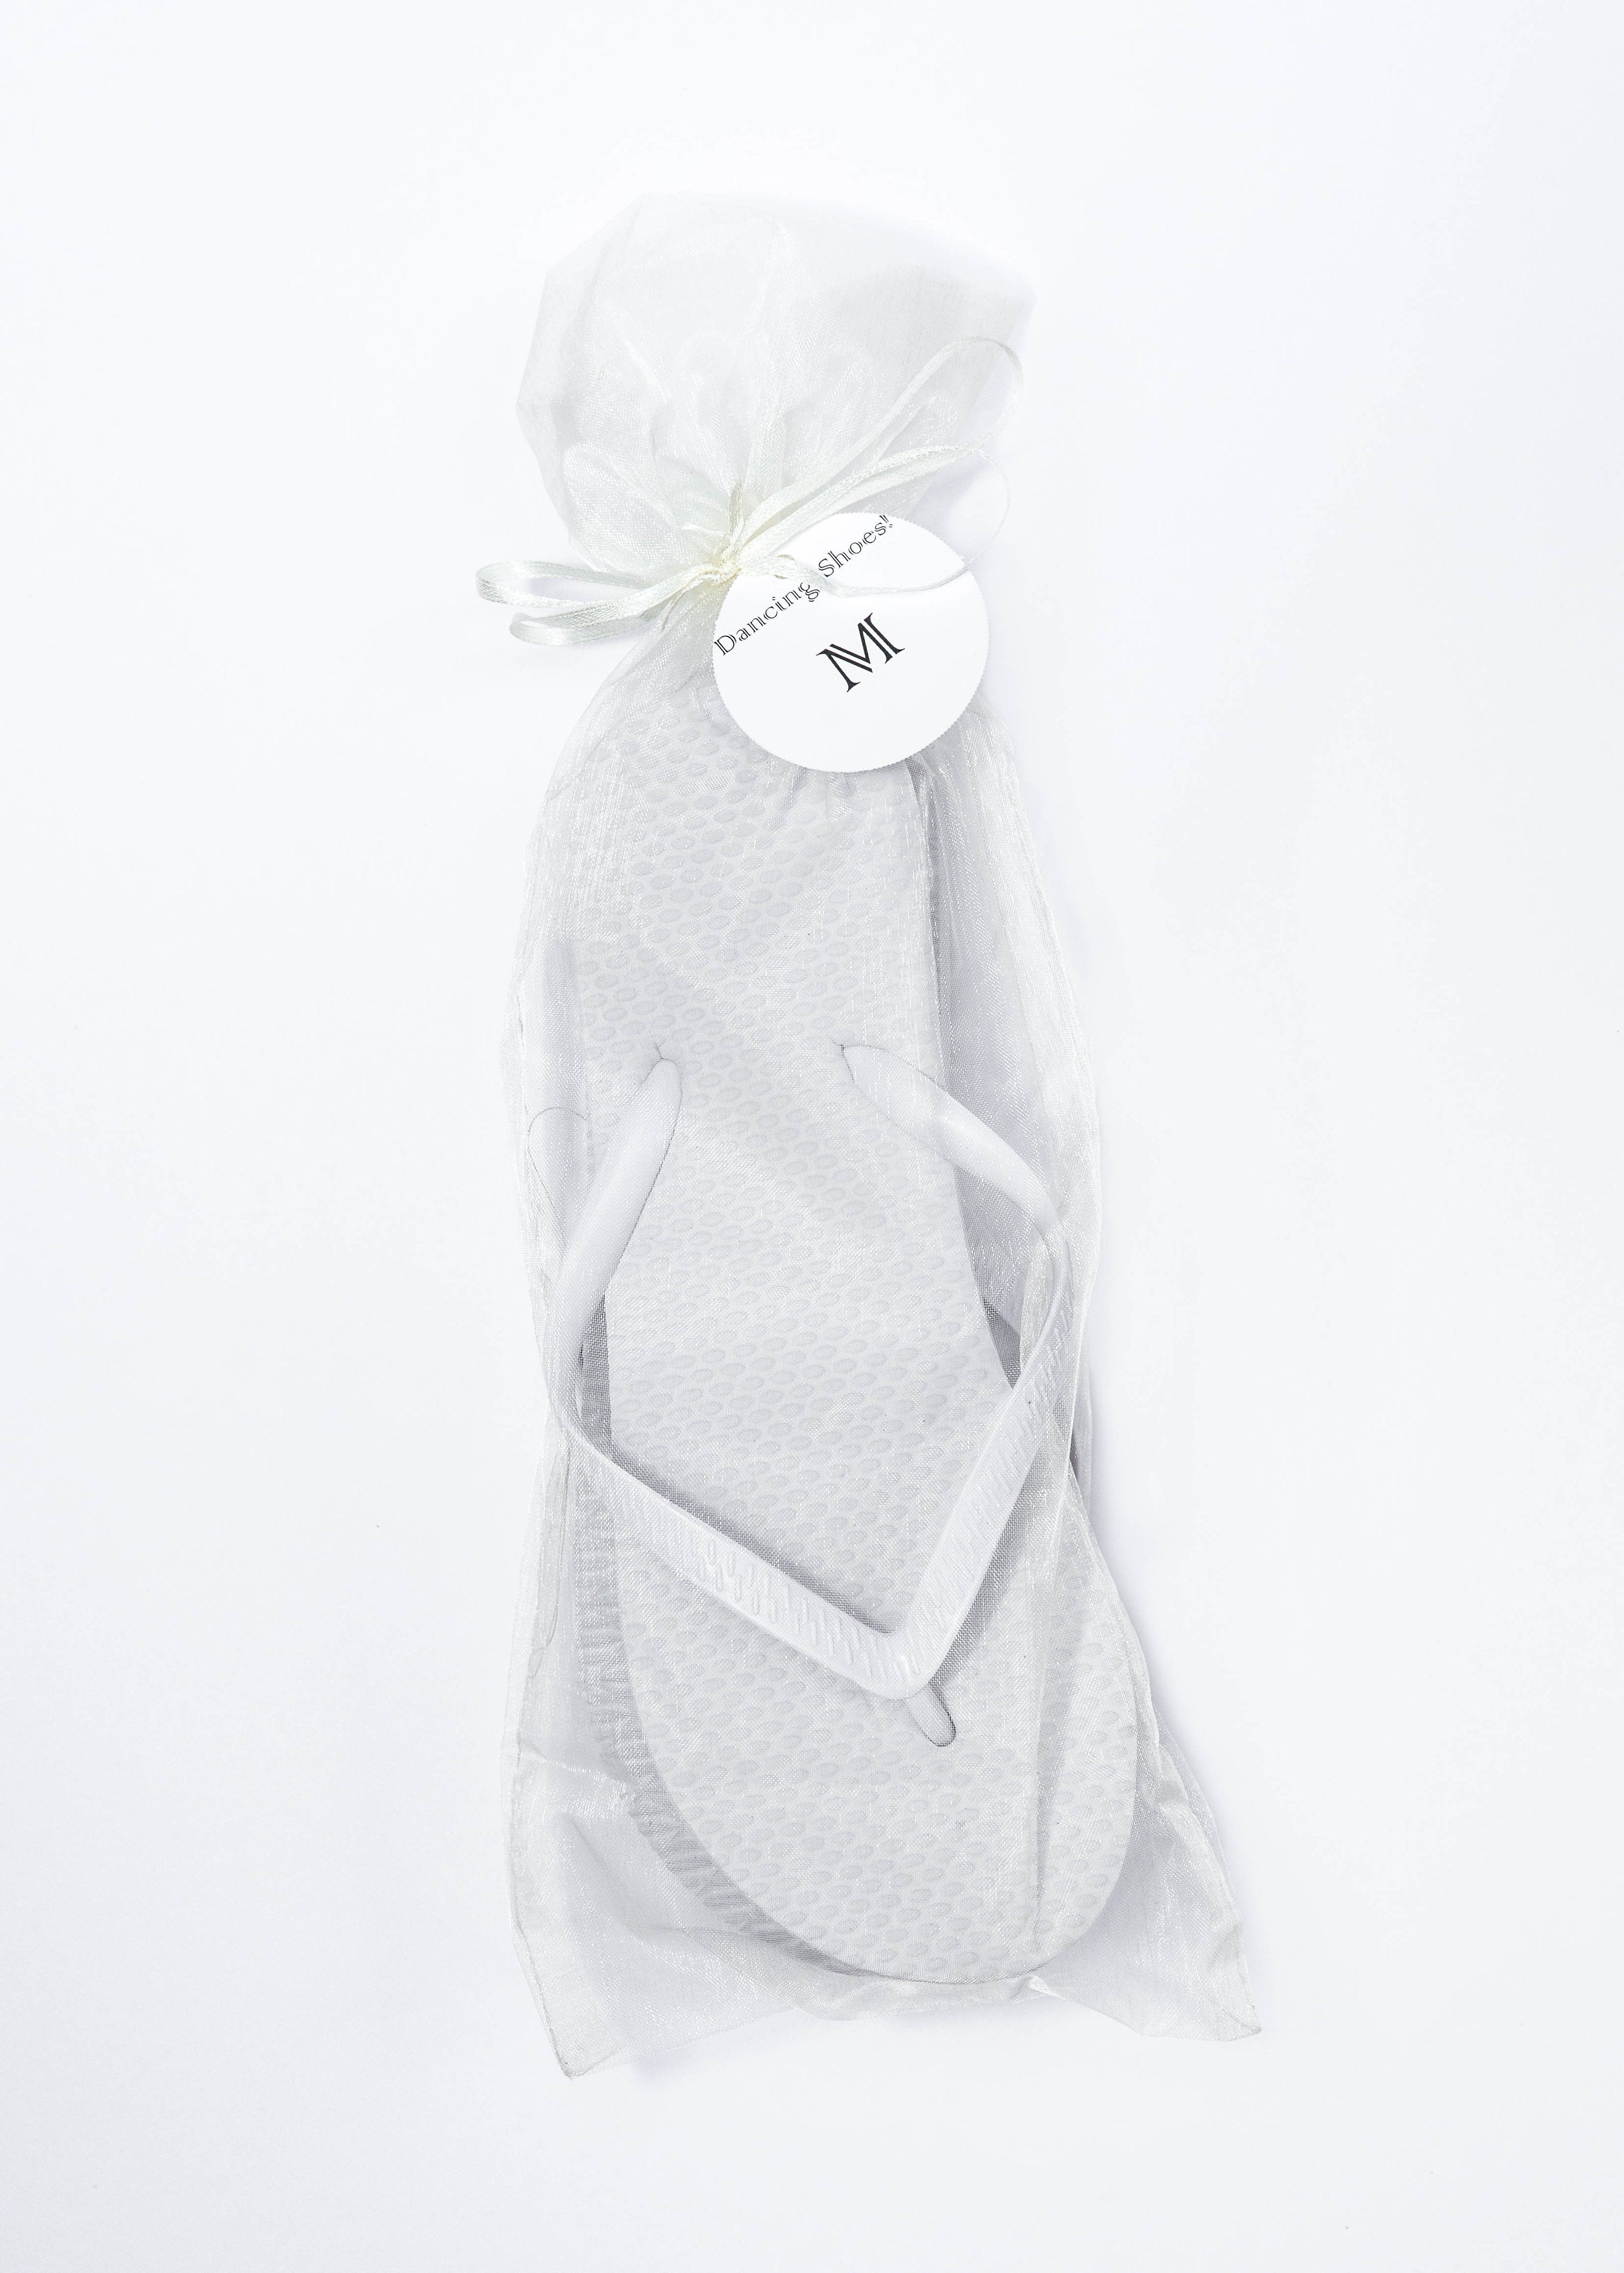 53ecddb46 Classic White Flip Flop with Ivory Organza Bags - My Party Saver. Your  Guest s Best Friend.™